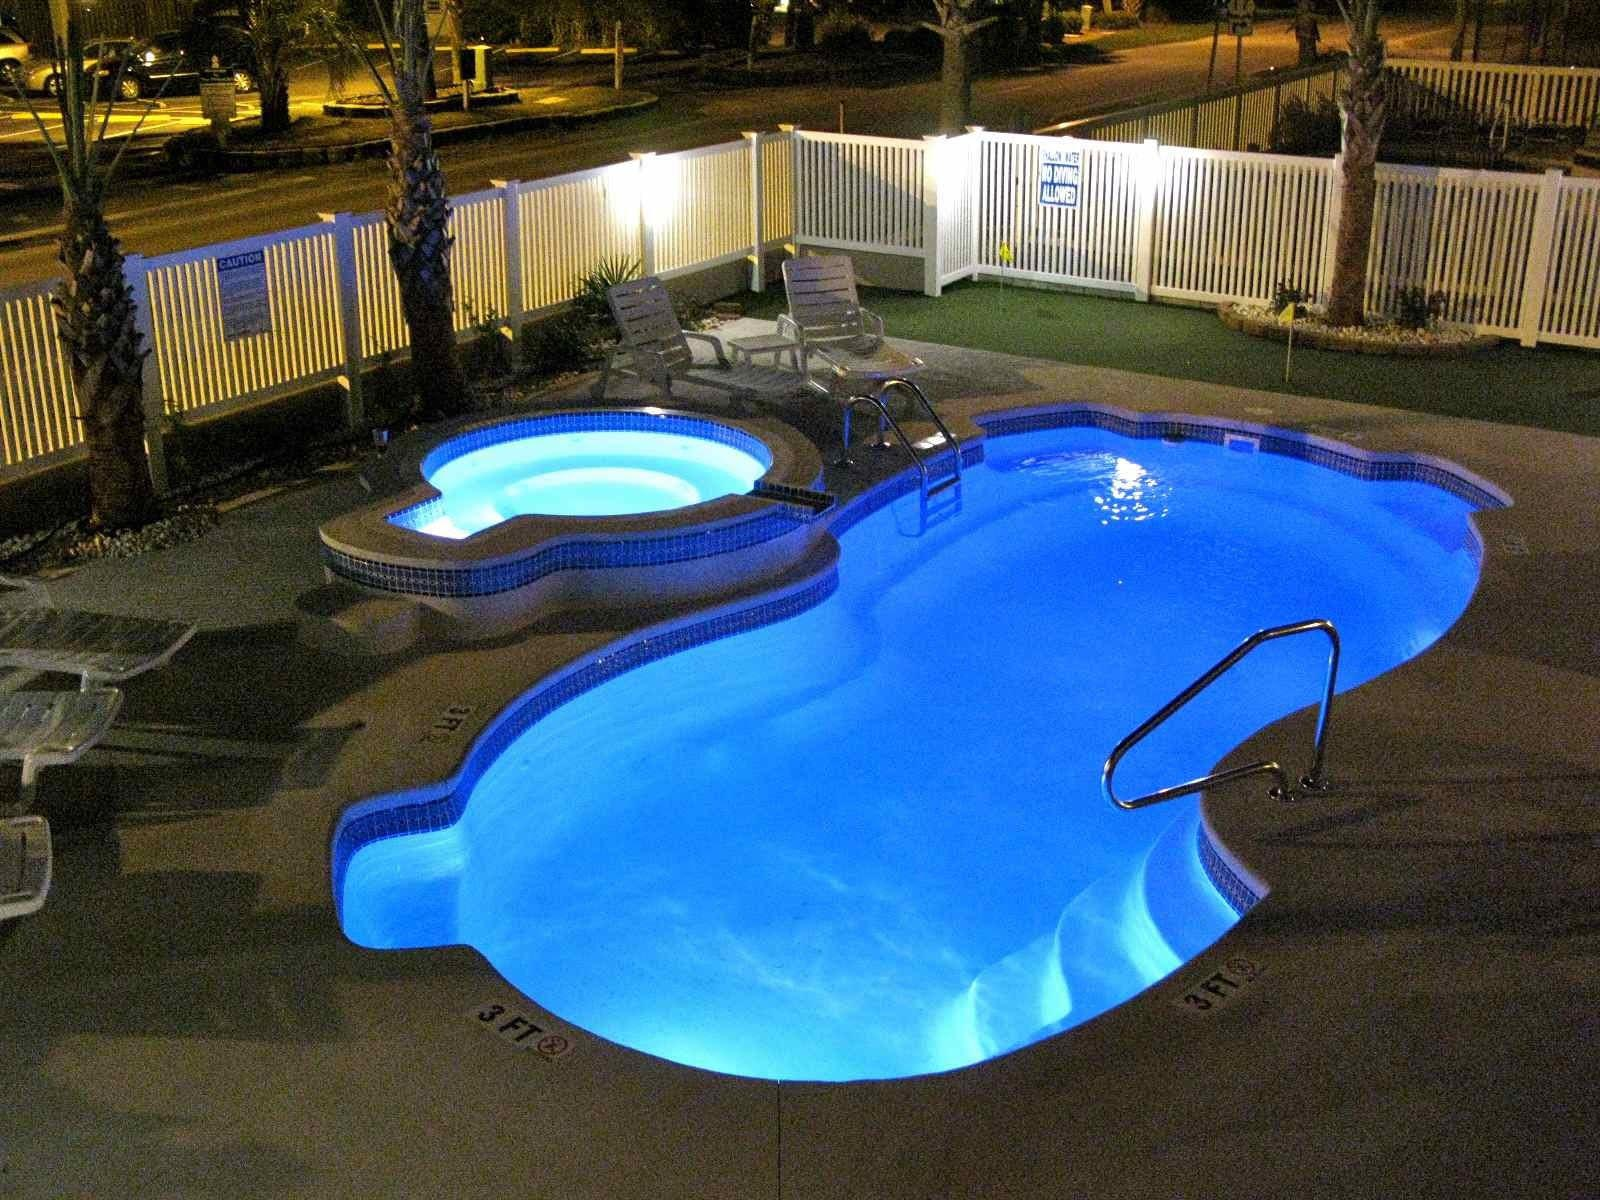 Inground pool deck which to choose backyard design ideas for In ground pool deck ideas